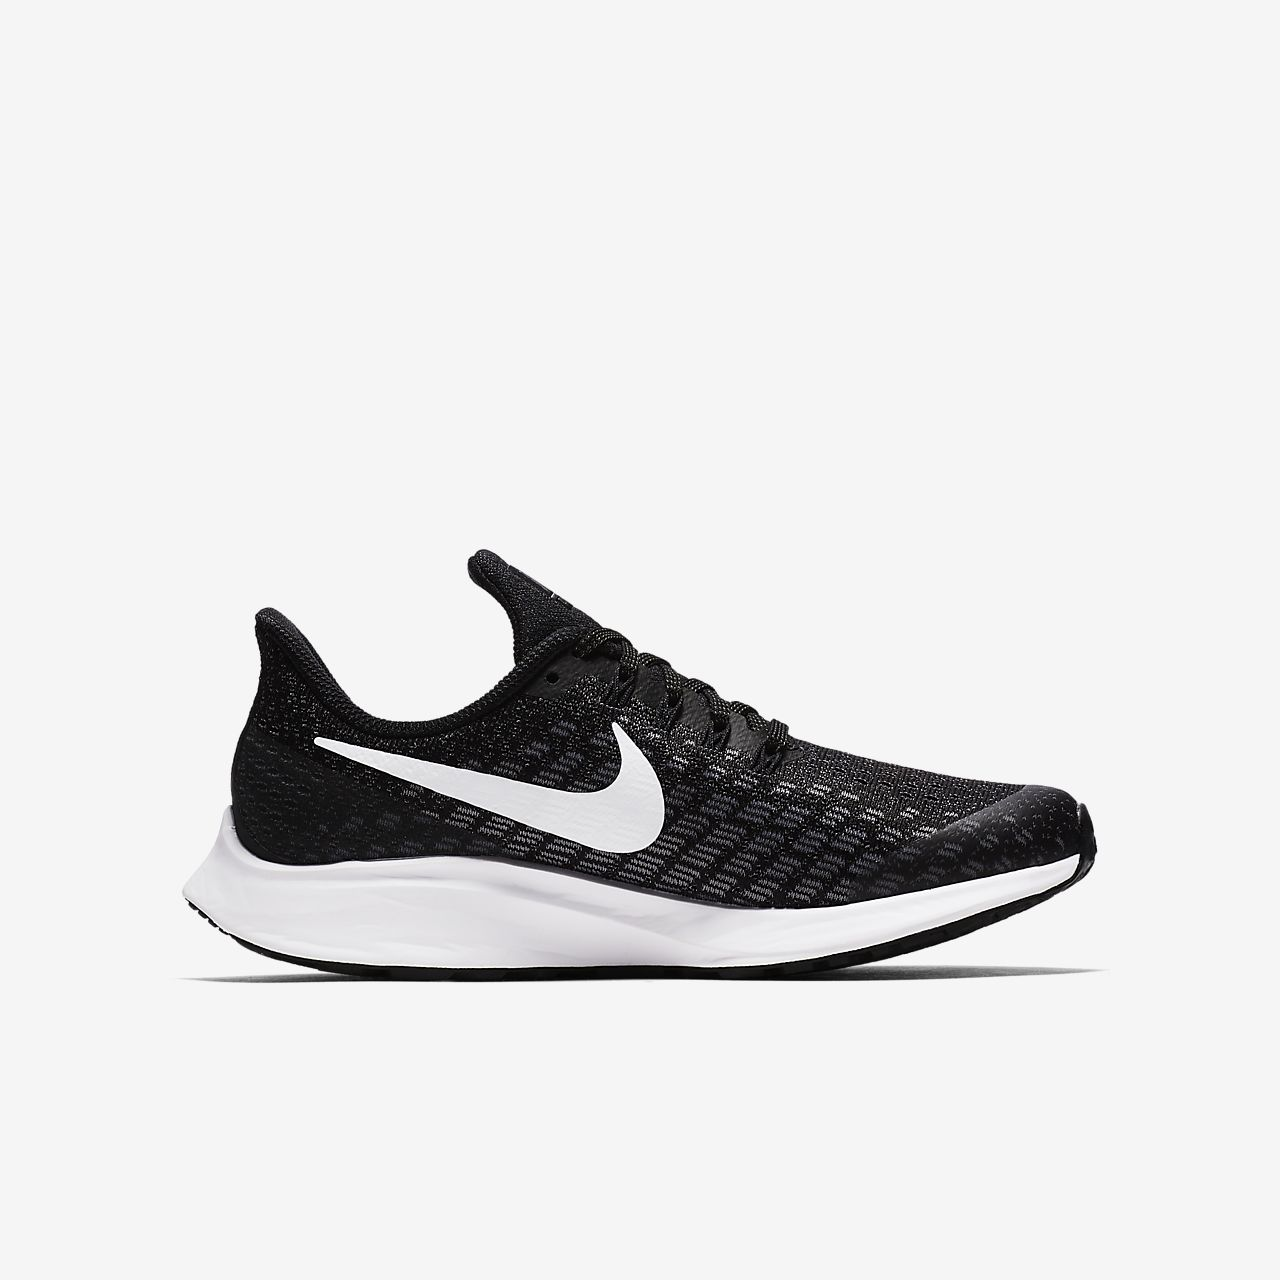 buy online 257f5 a52a2 ... Nike Air Zoom Pegasus 35 Younger Older Kids  Running Shoe